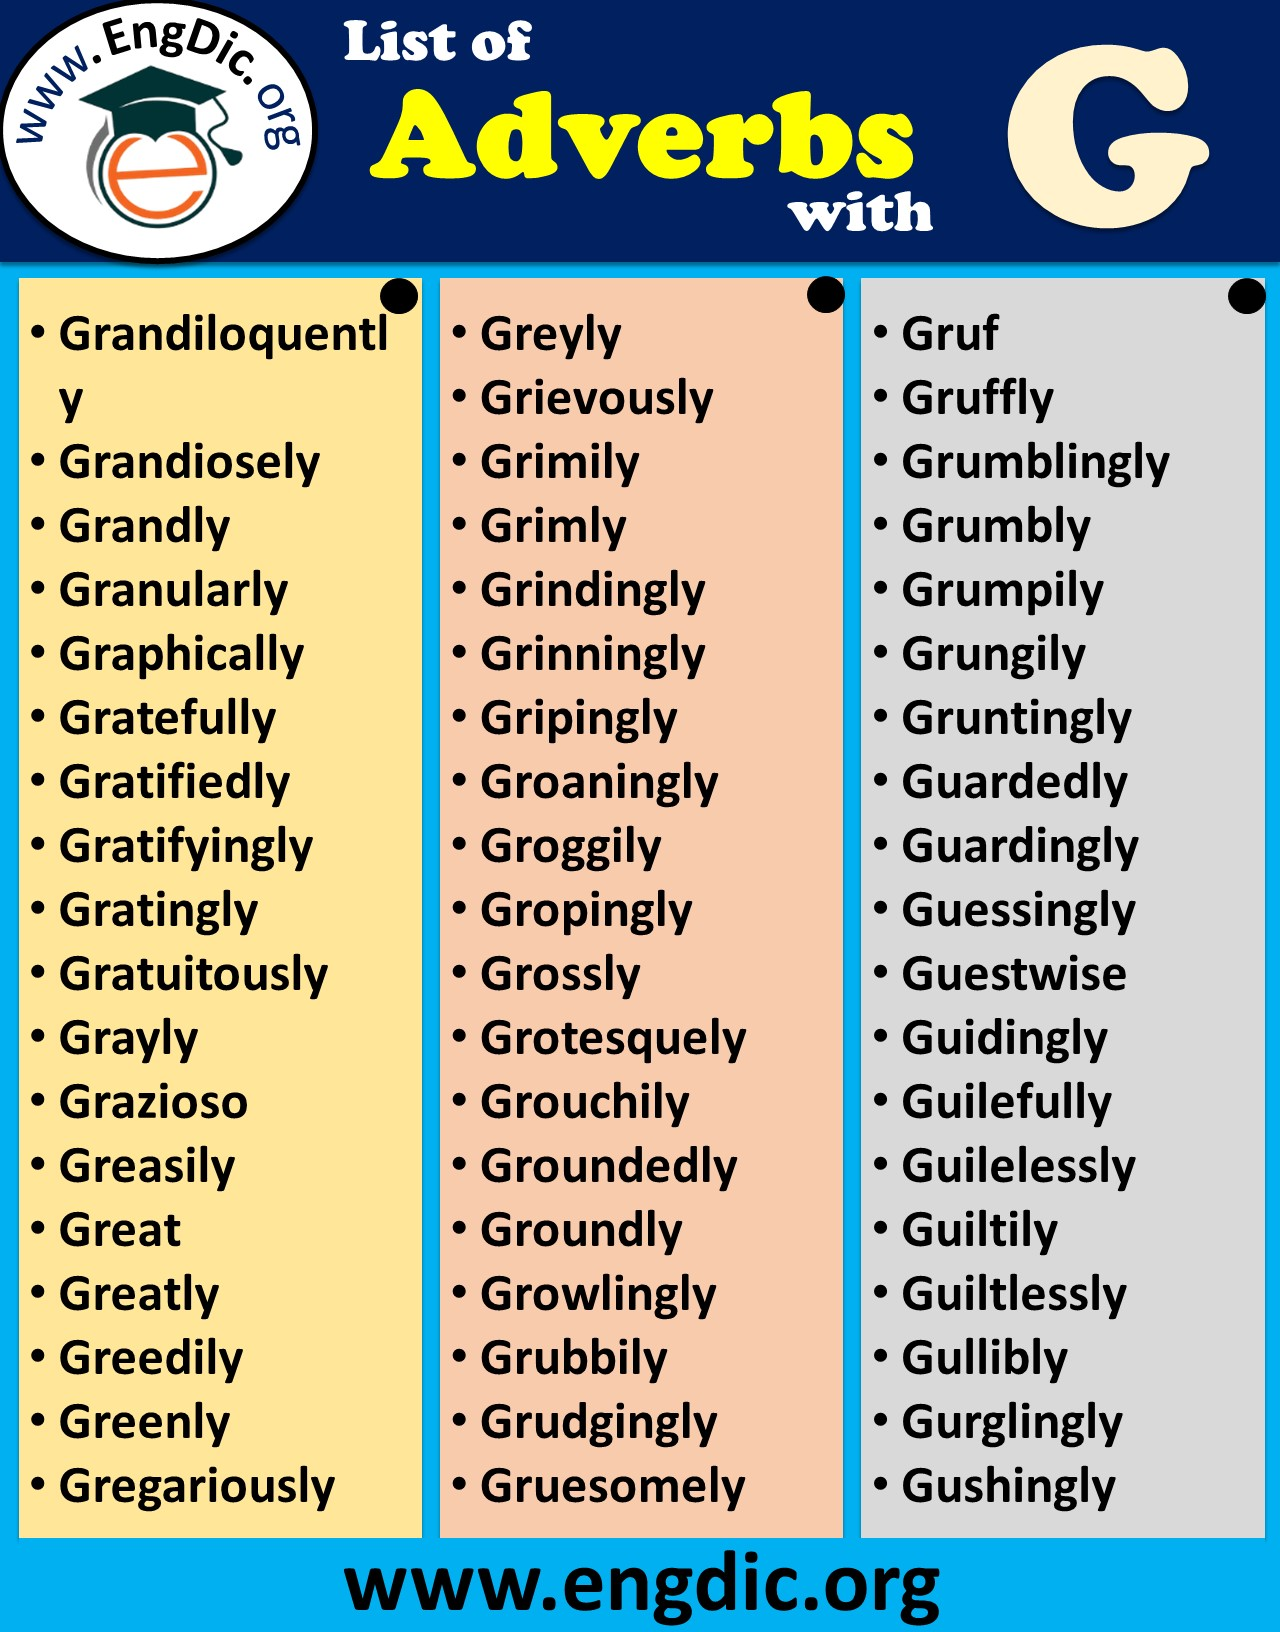 list of adverbs starting with g